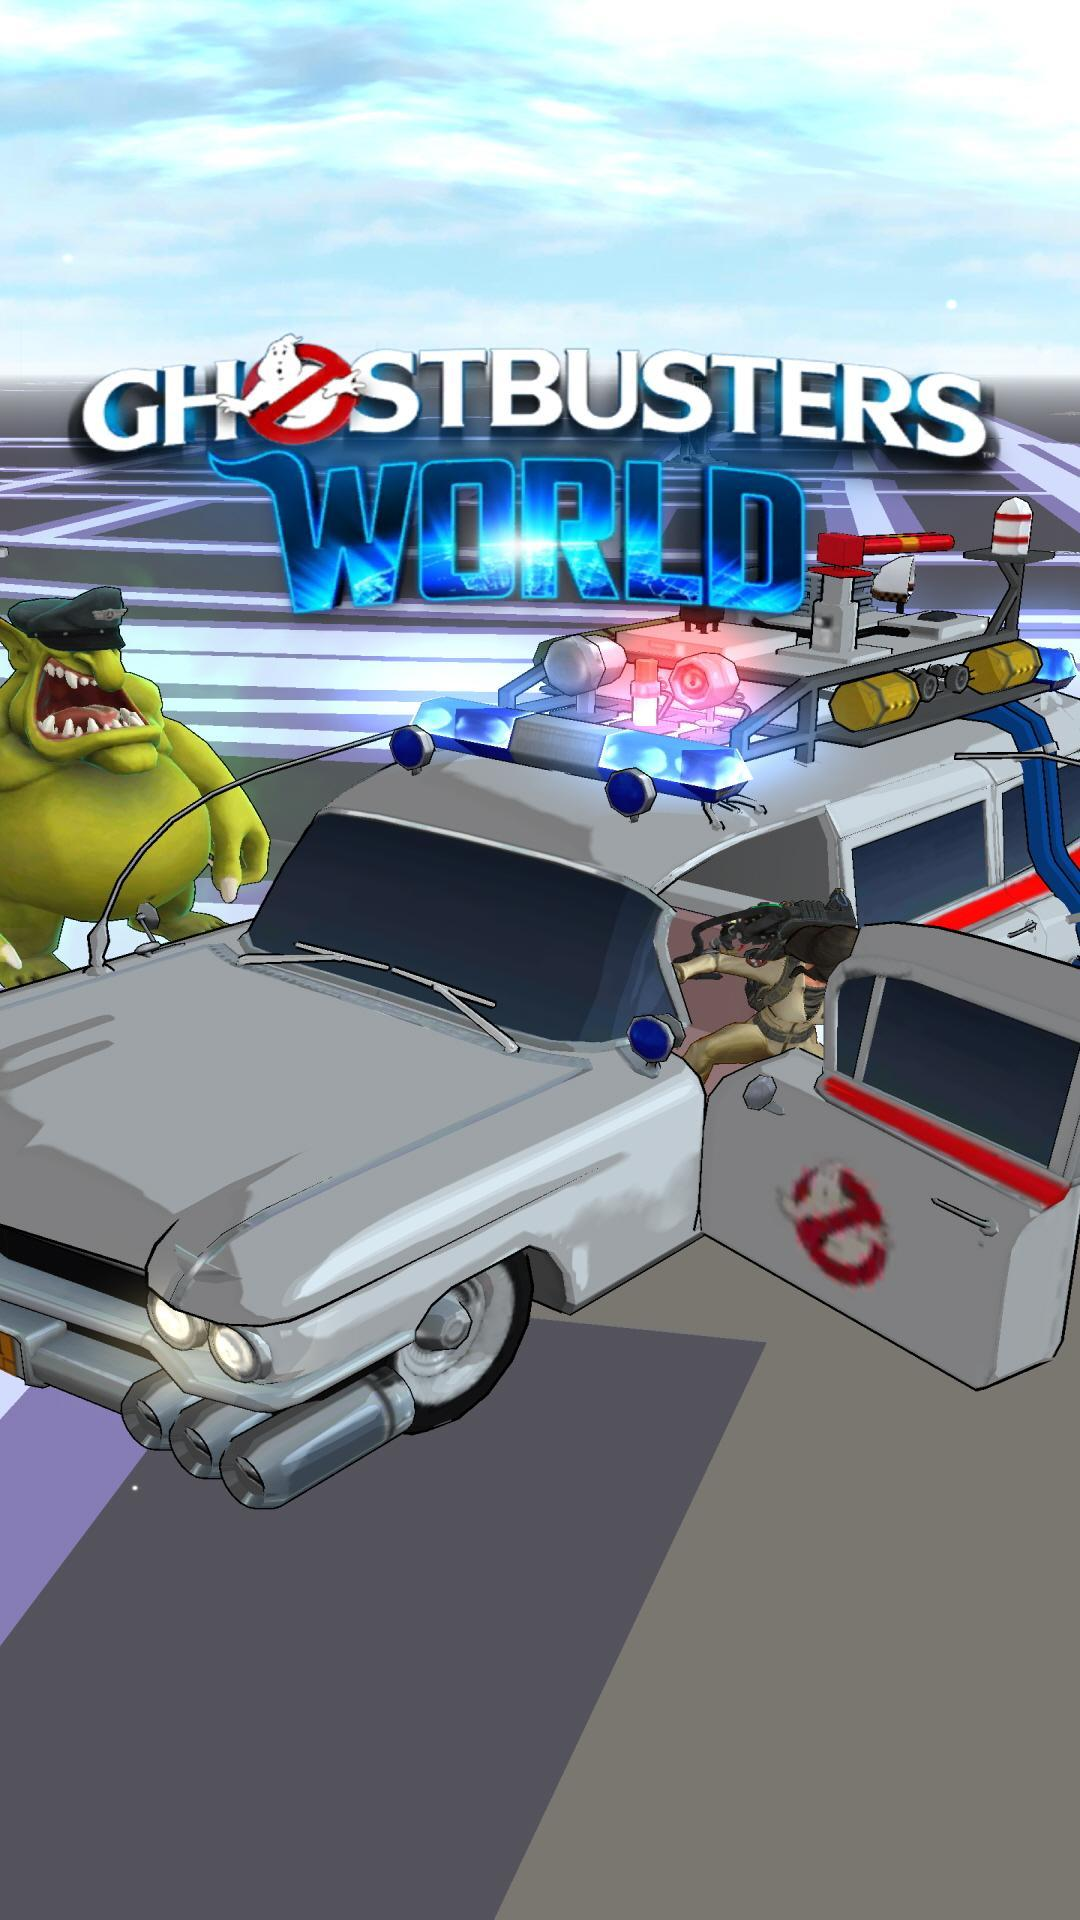 Ghostbusters World 1.16.2 Screenshot 23